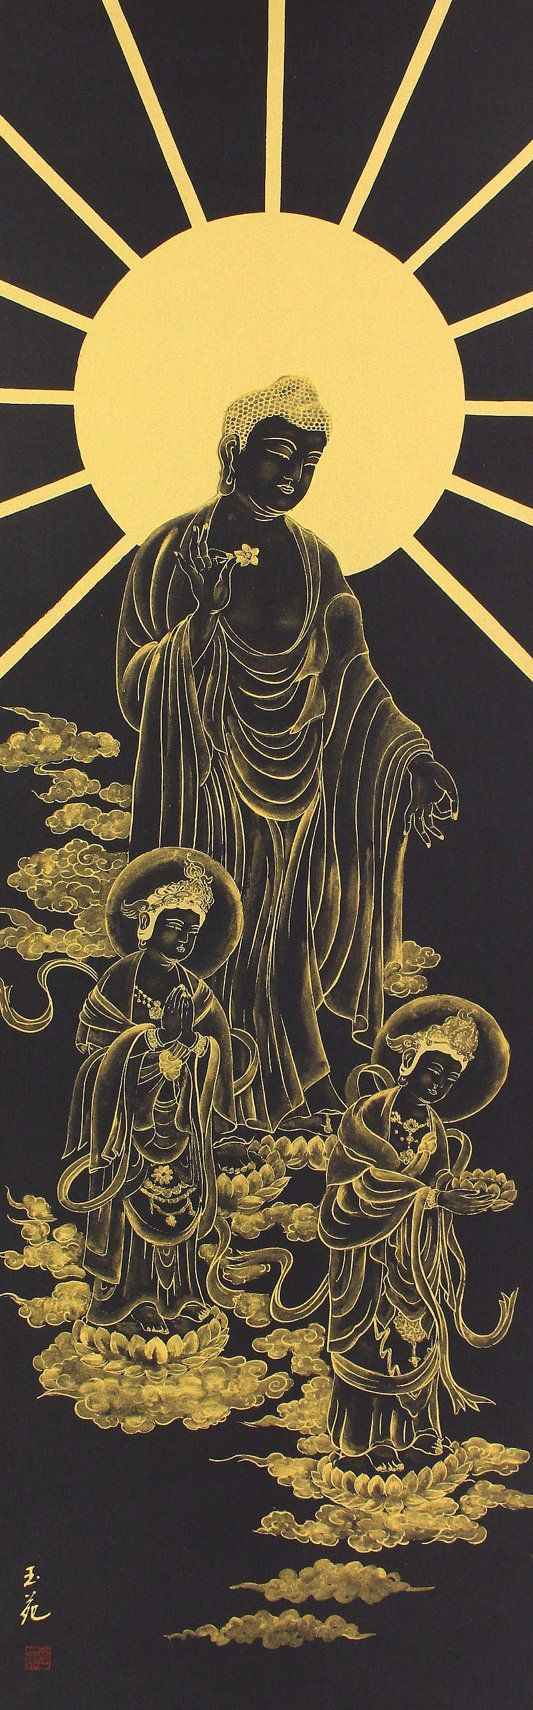 Gold Painting on Navy blue coIour, images of Three Buddha.